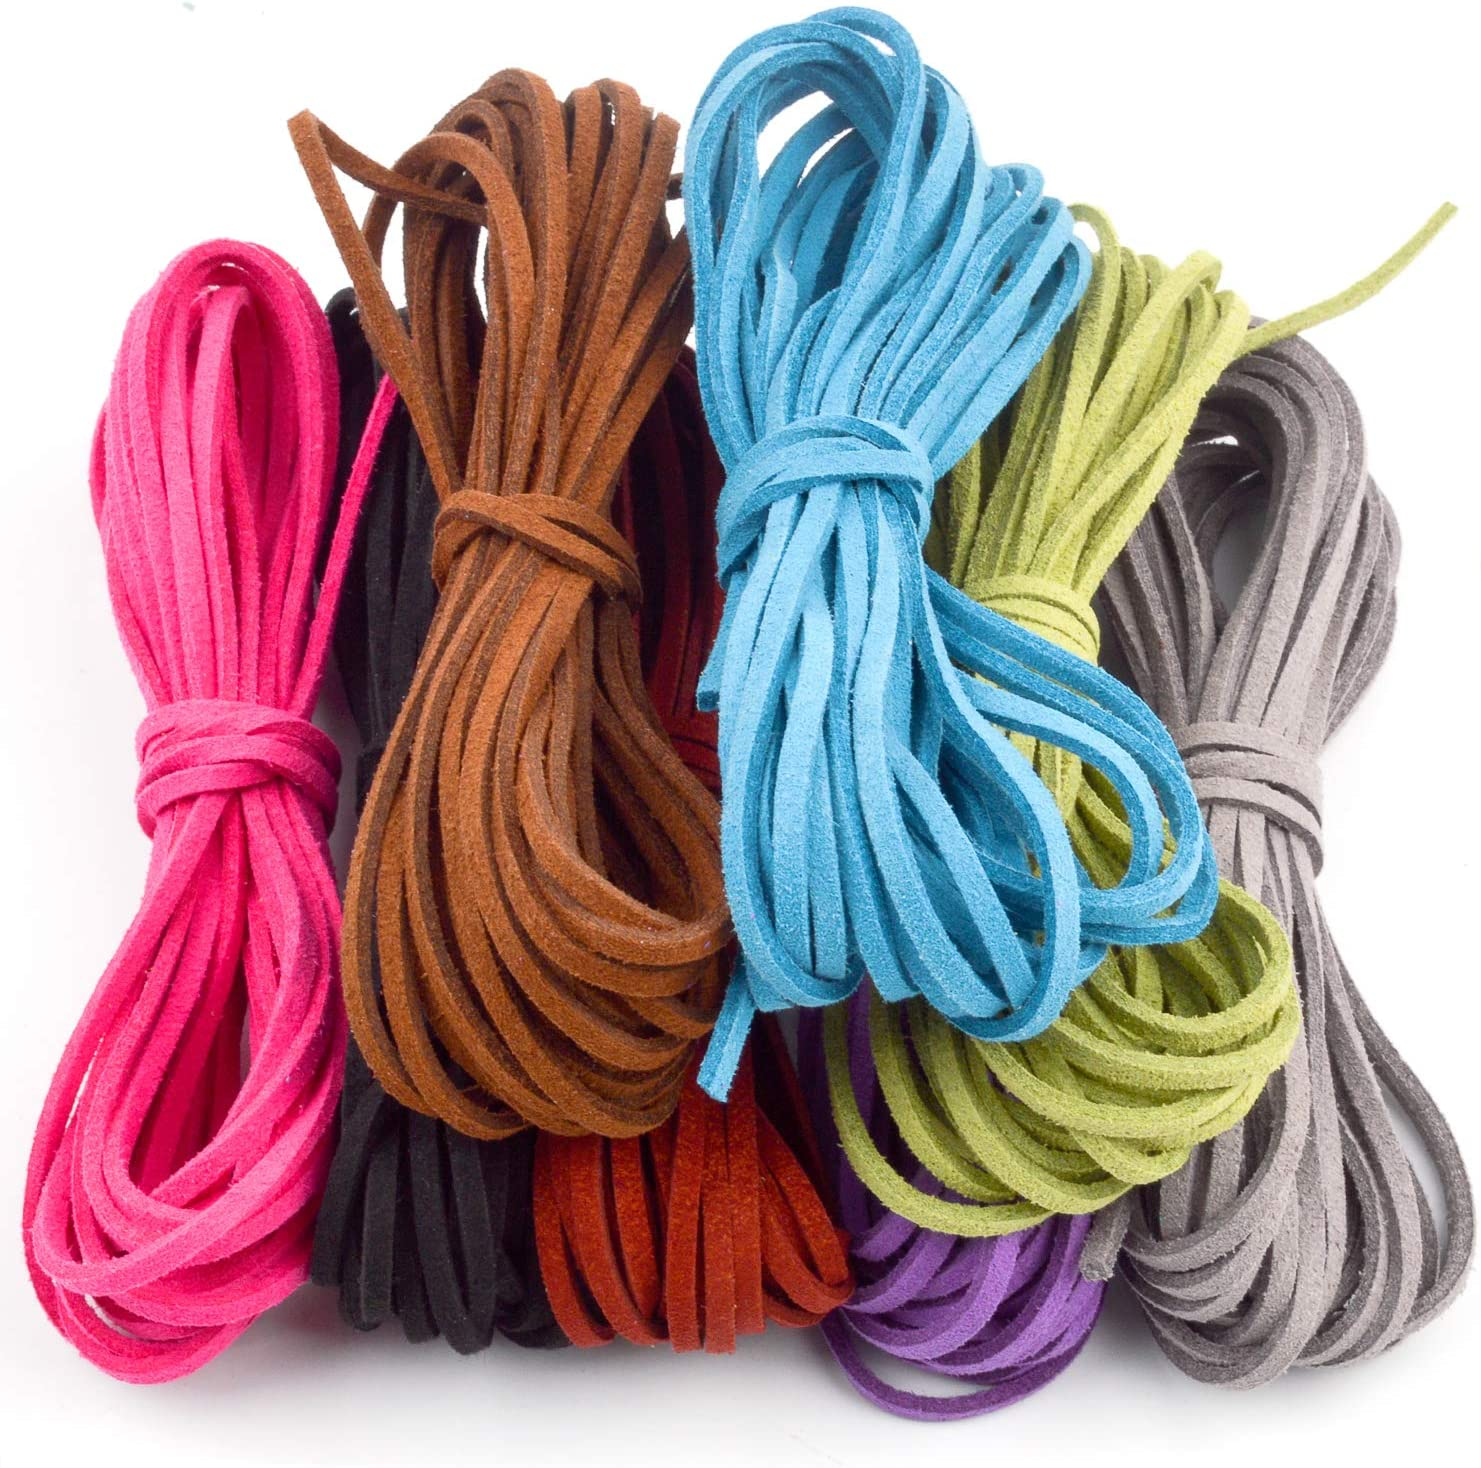 Jnch 3mm x 5m suede leather rope cord for bracelet necklace